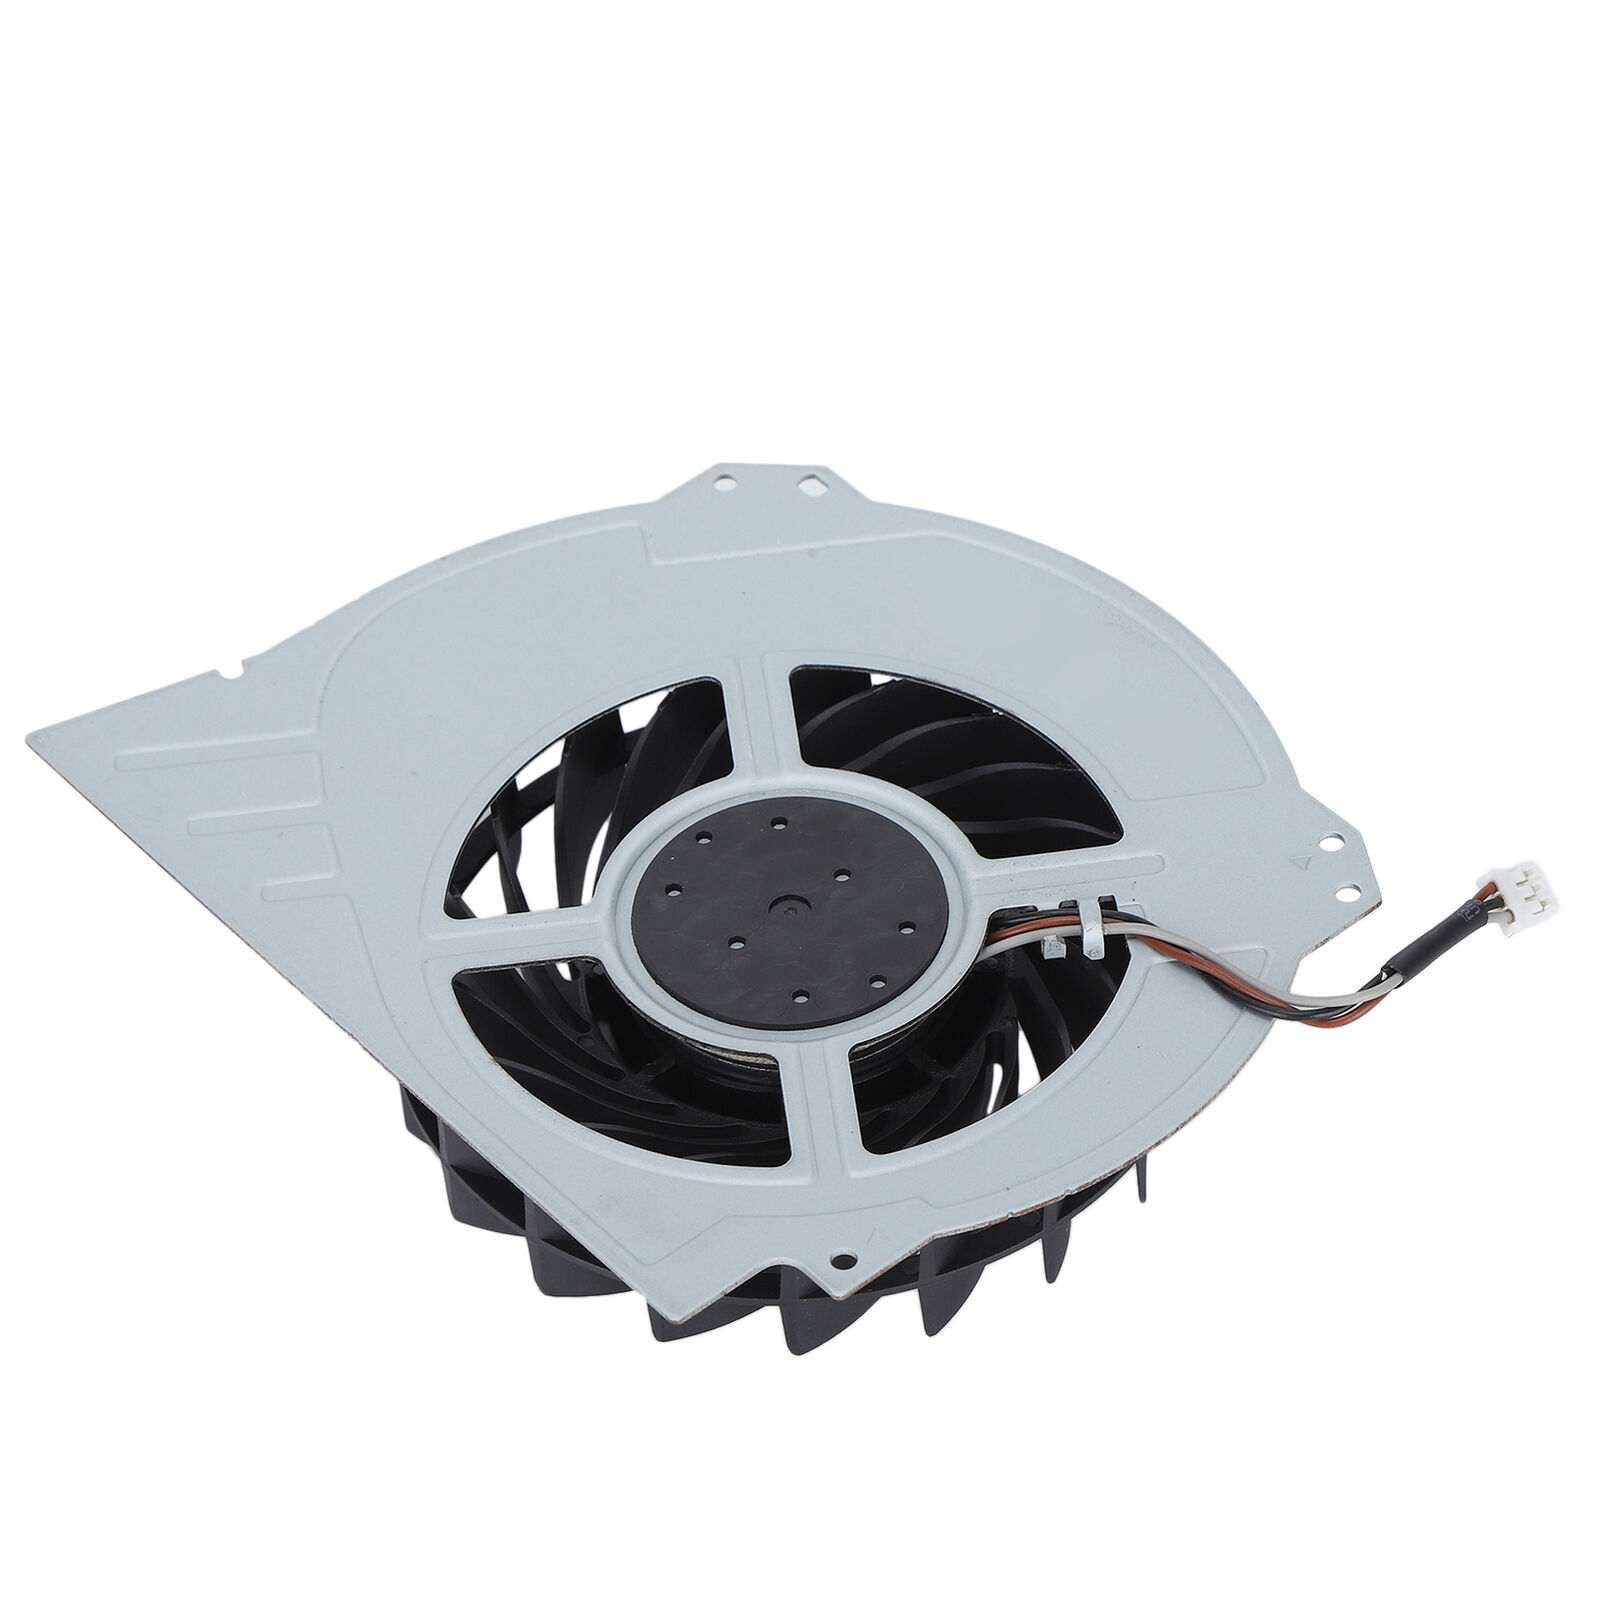 Replacement Built-in Cooling Fan for Sony PS4 Pro 7000-7500 Game Console Cooler